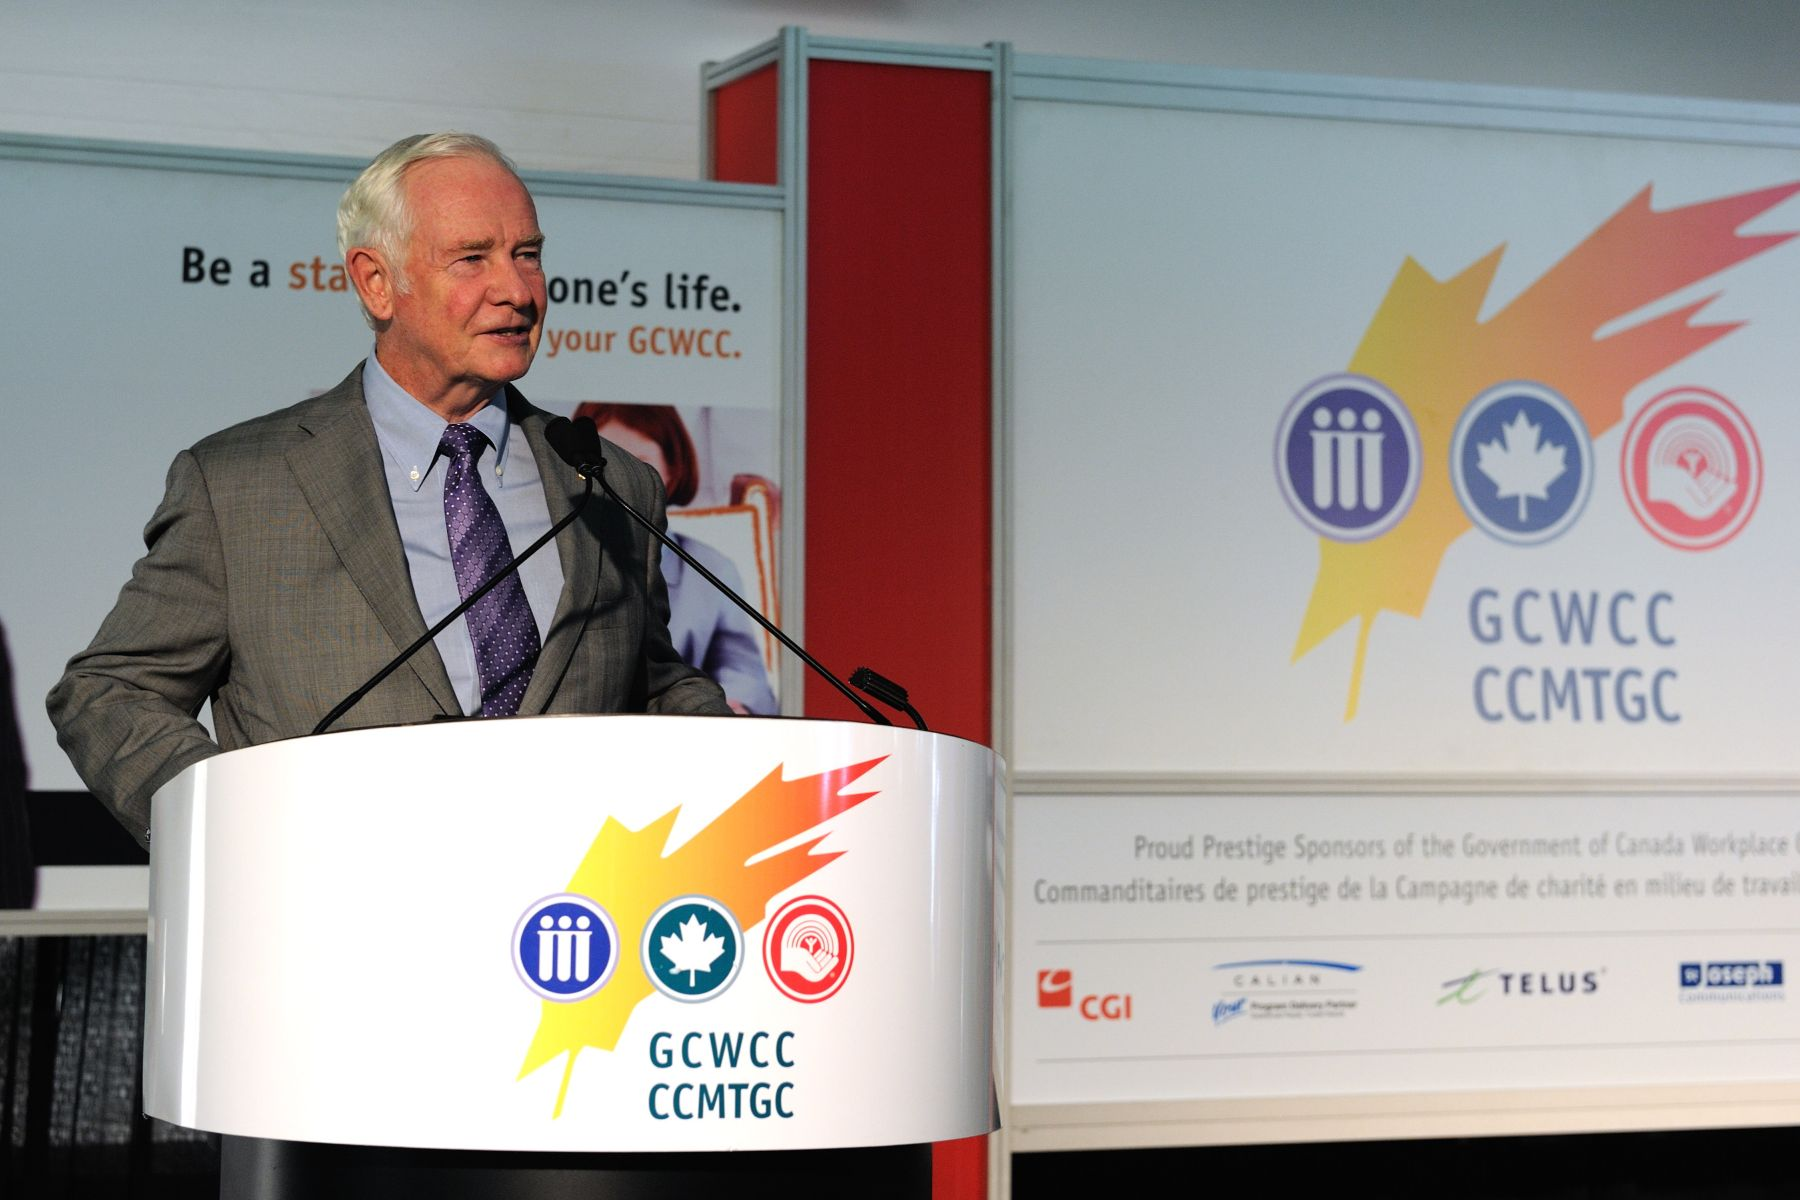 As patron of United Way Canada, His Excellency the Right Honourable David Johnston, Governor General of Canada, attended the launch of the 2011 Government of Canada Workplace Charitable Campaign (GCWCC), held on the grounds of Rideau Hall.